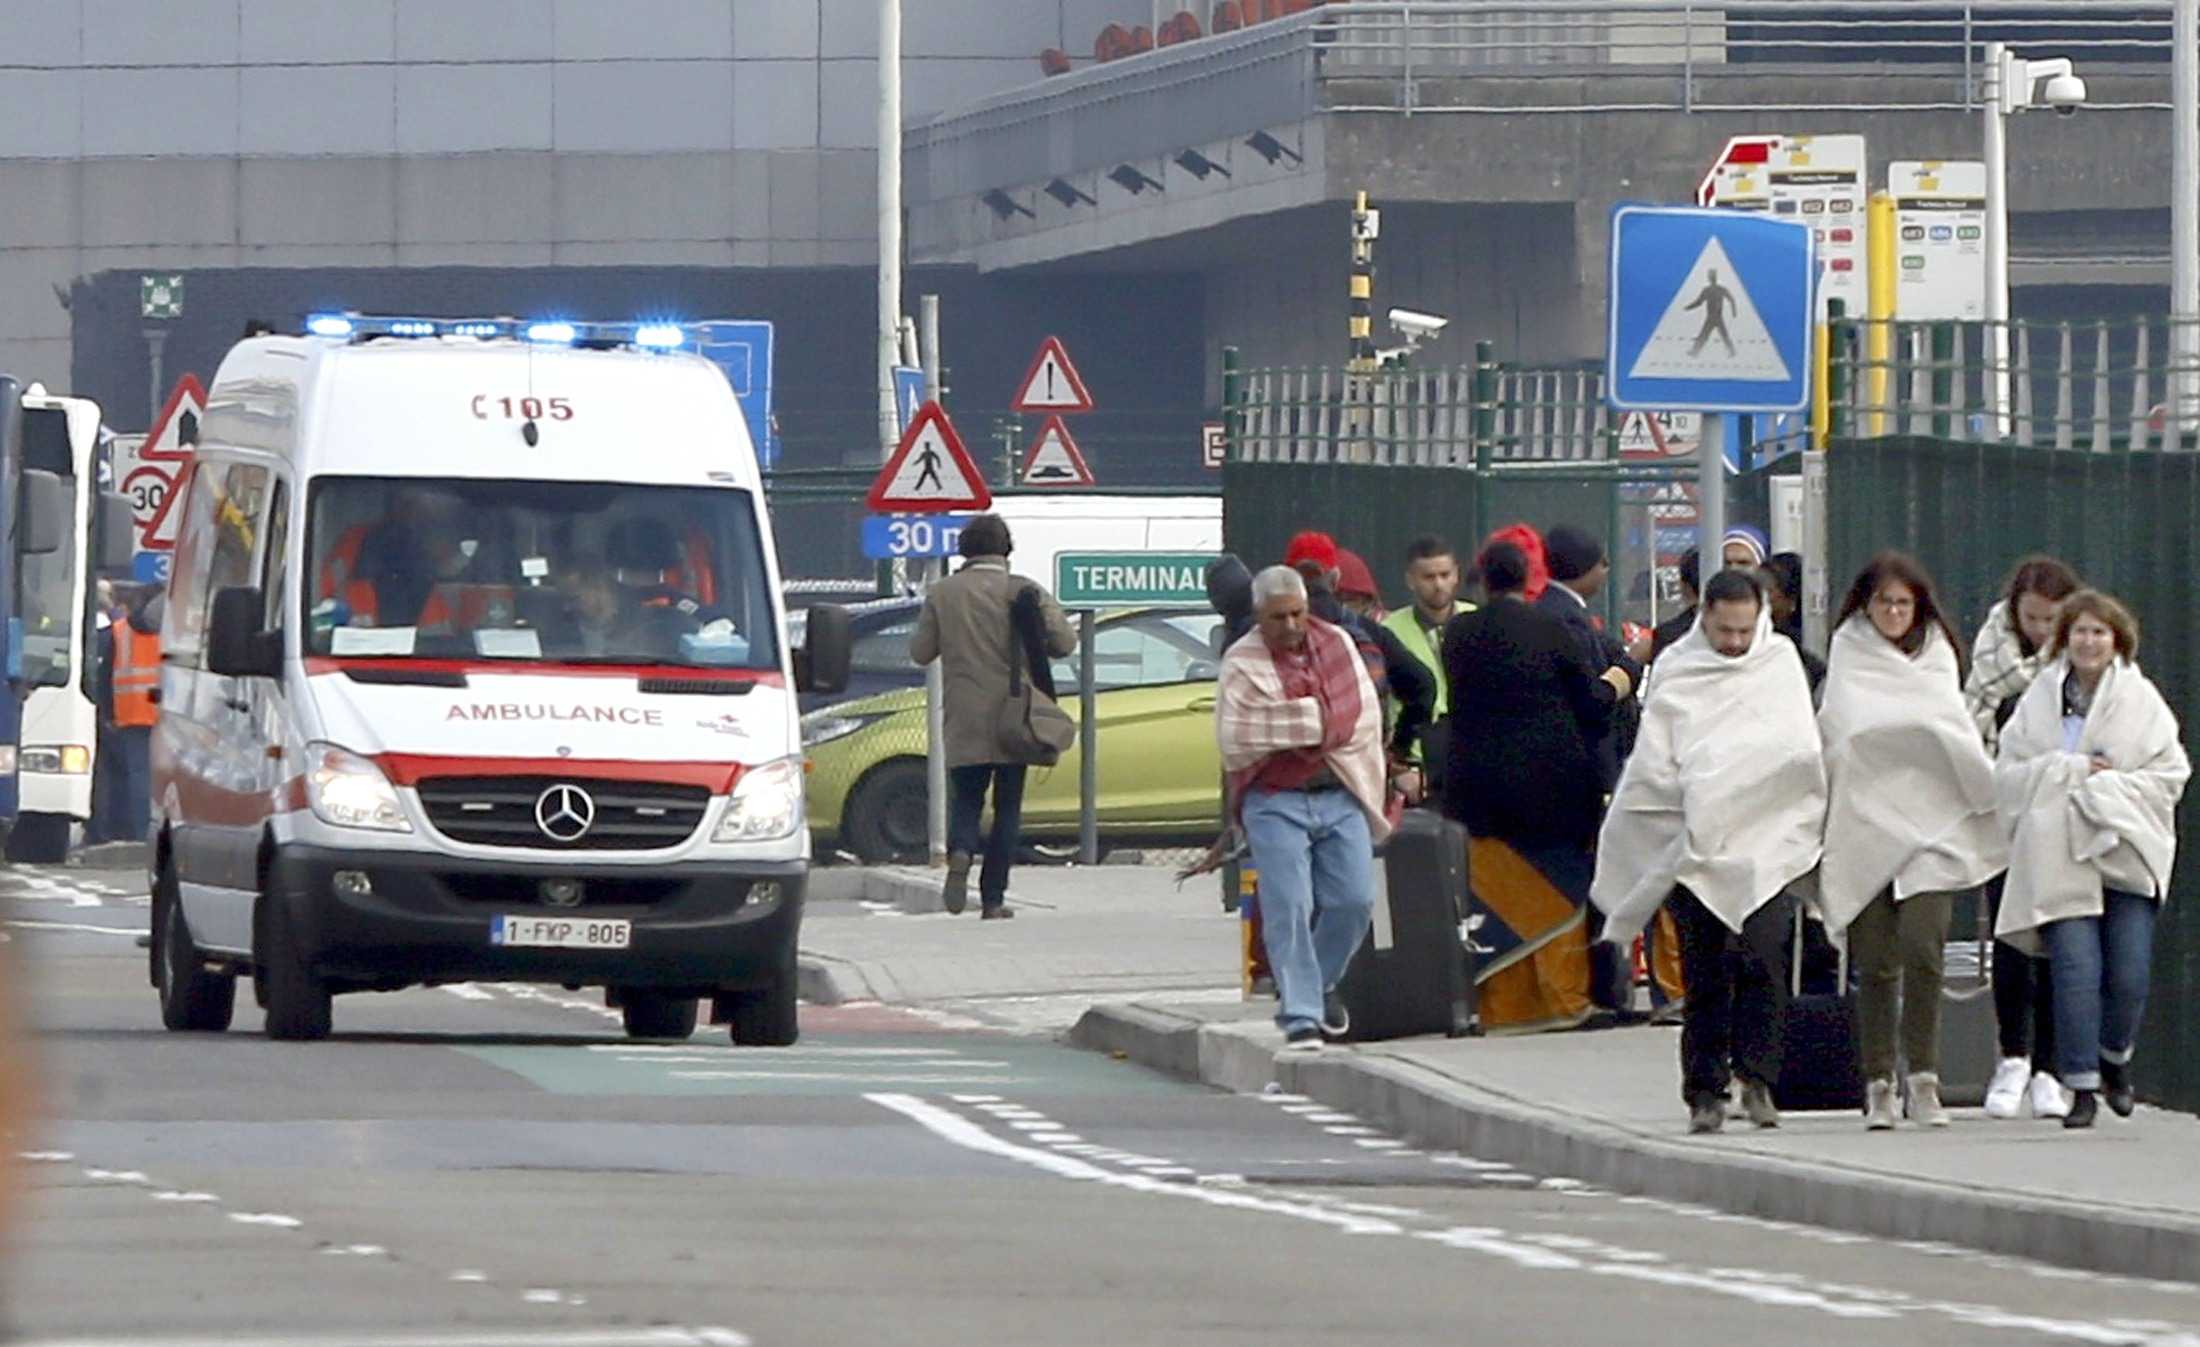 People wrapped in blankets leave the scene of explosions at  Zaventem airport near Brussels, Belgium